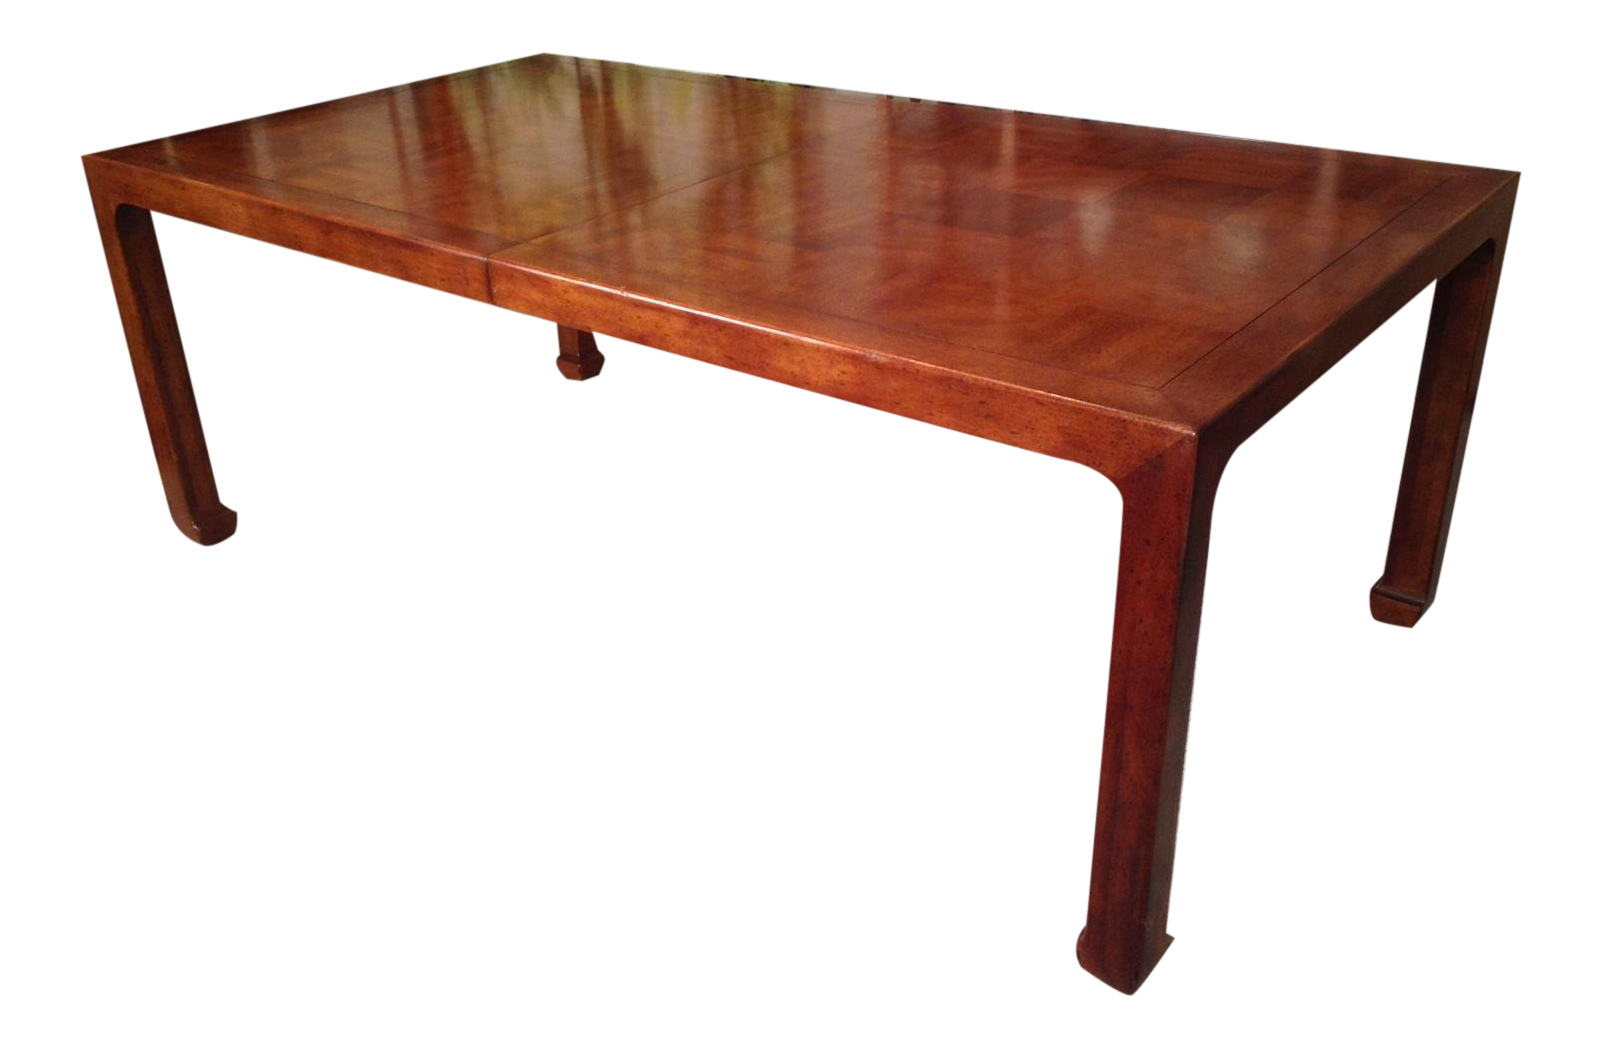 Henredon Asian Solid Mahogany Dining Table Chairish : henredon asian solid mahogany dining table 4045aspectfitampwidth640ampheight640 from www.chairish.com size 640 x 640 jpeg 23kB